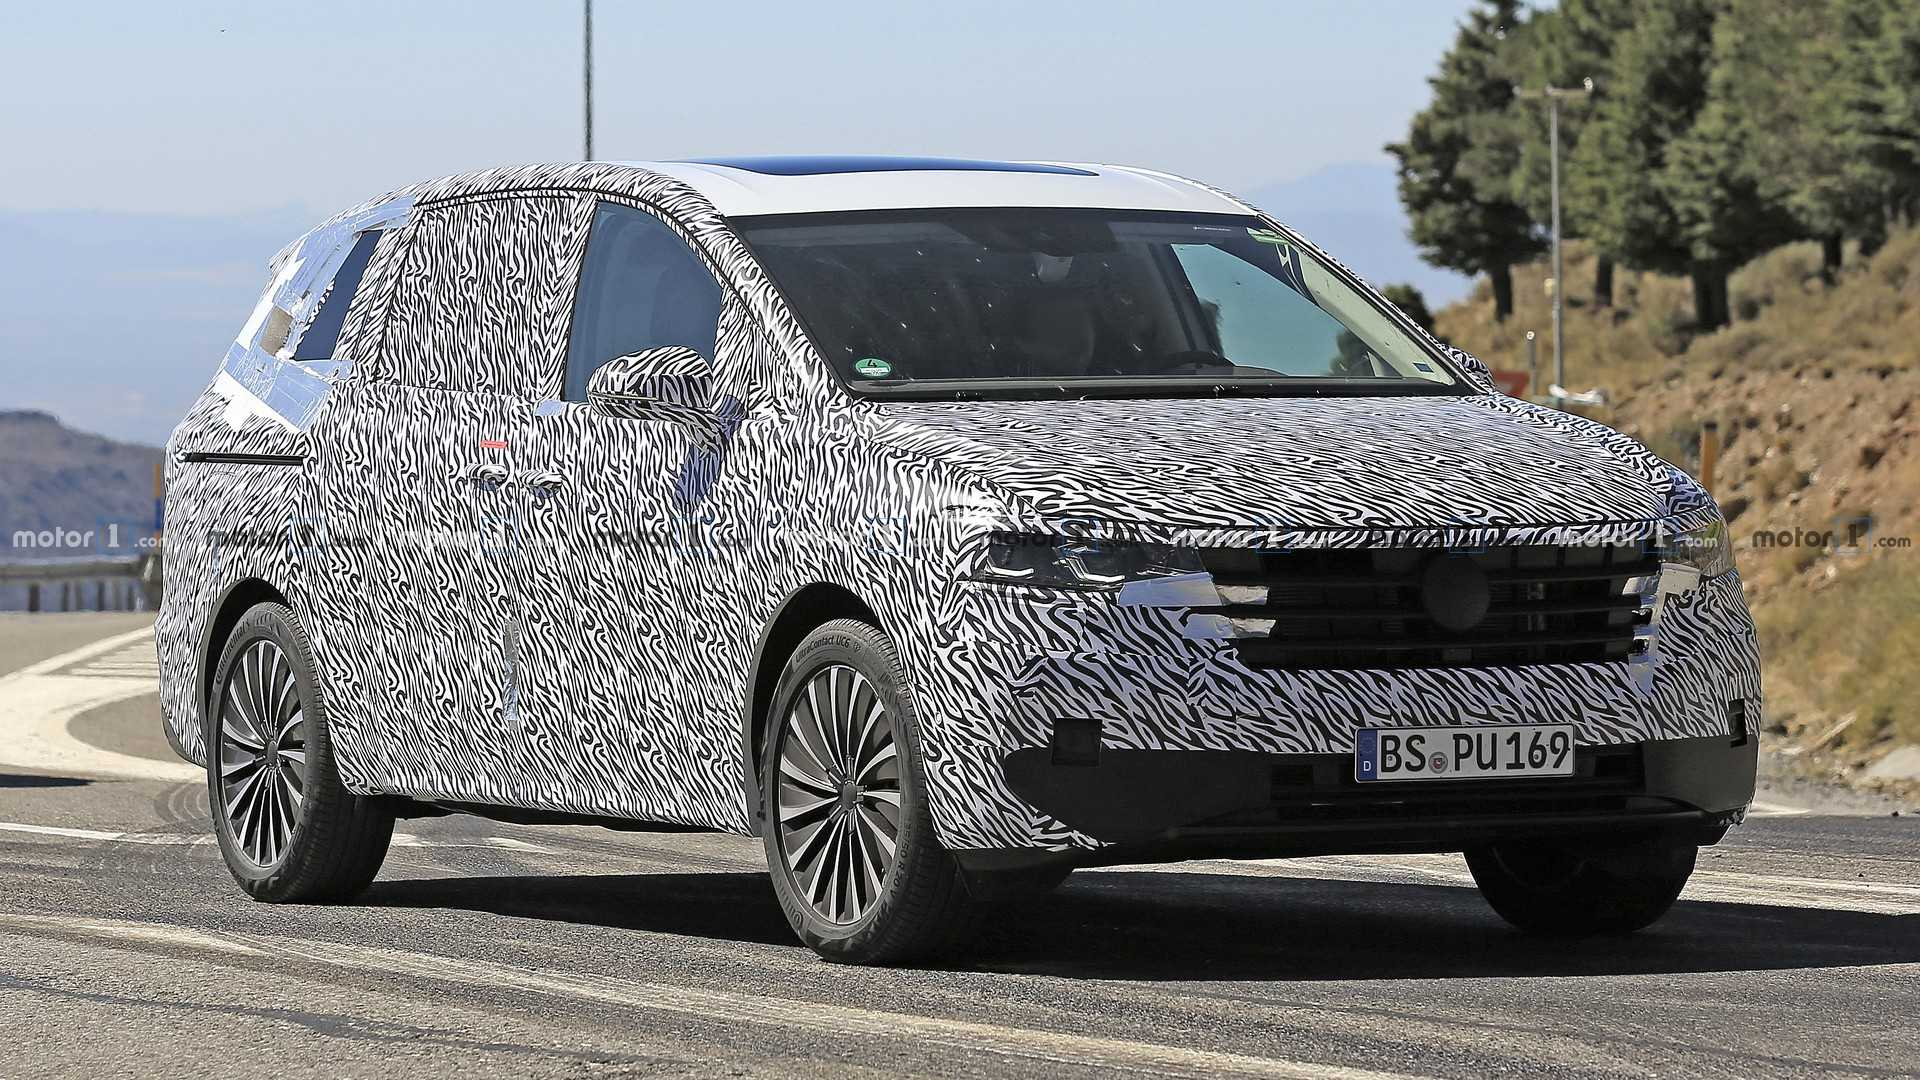 2021 VW Sharan Release Date and Concept